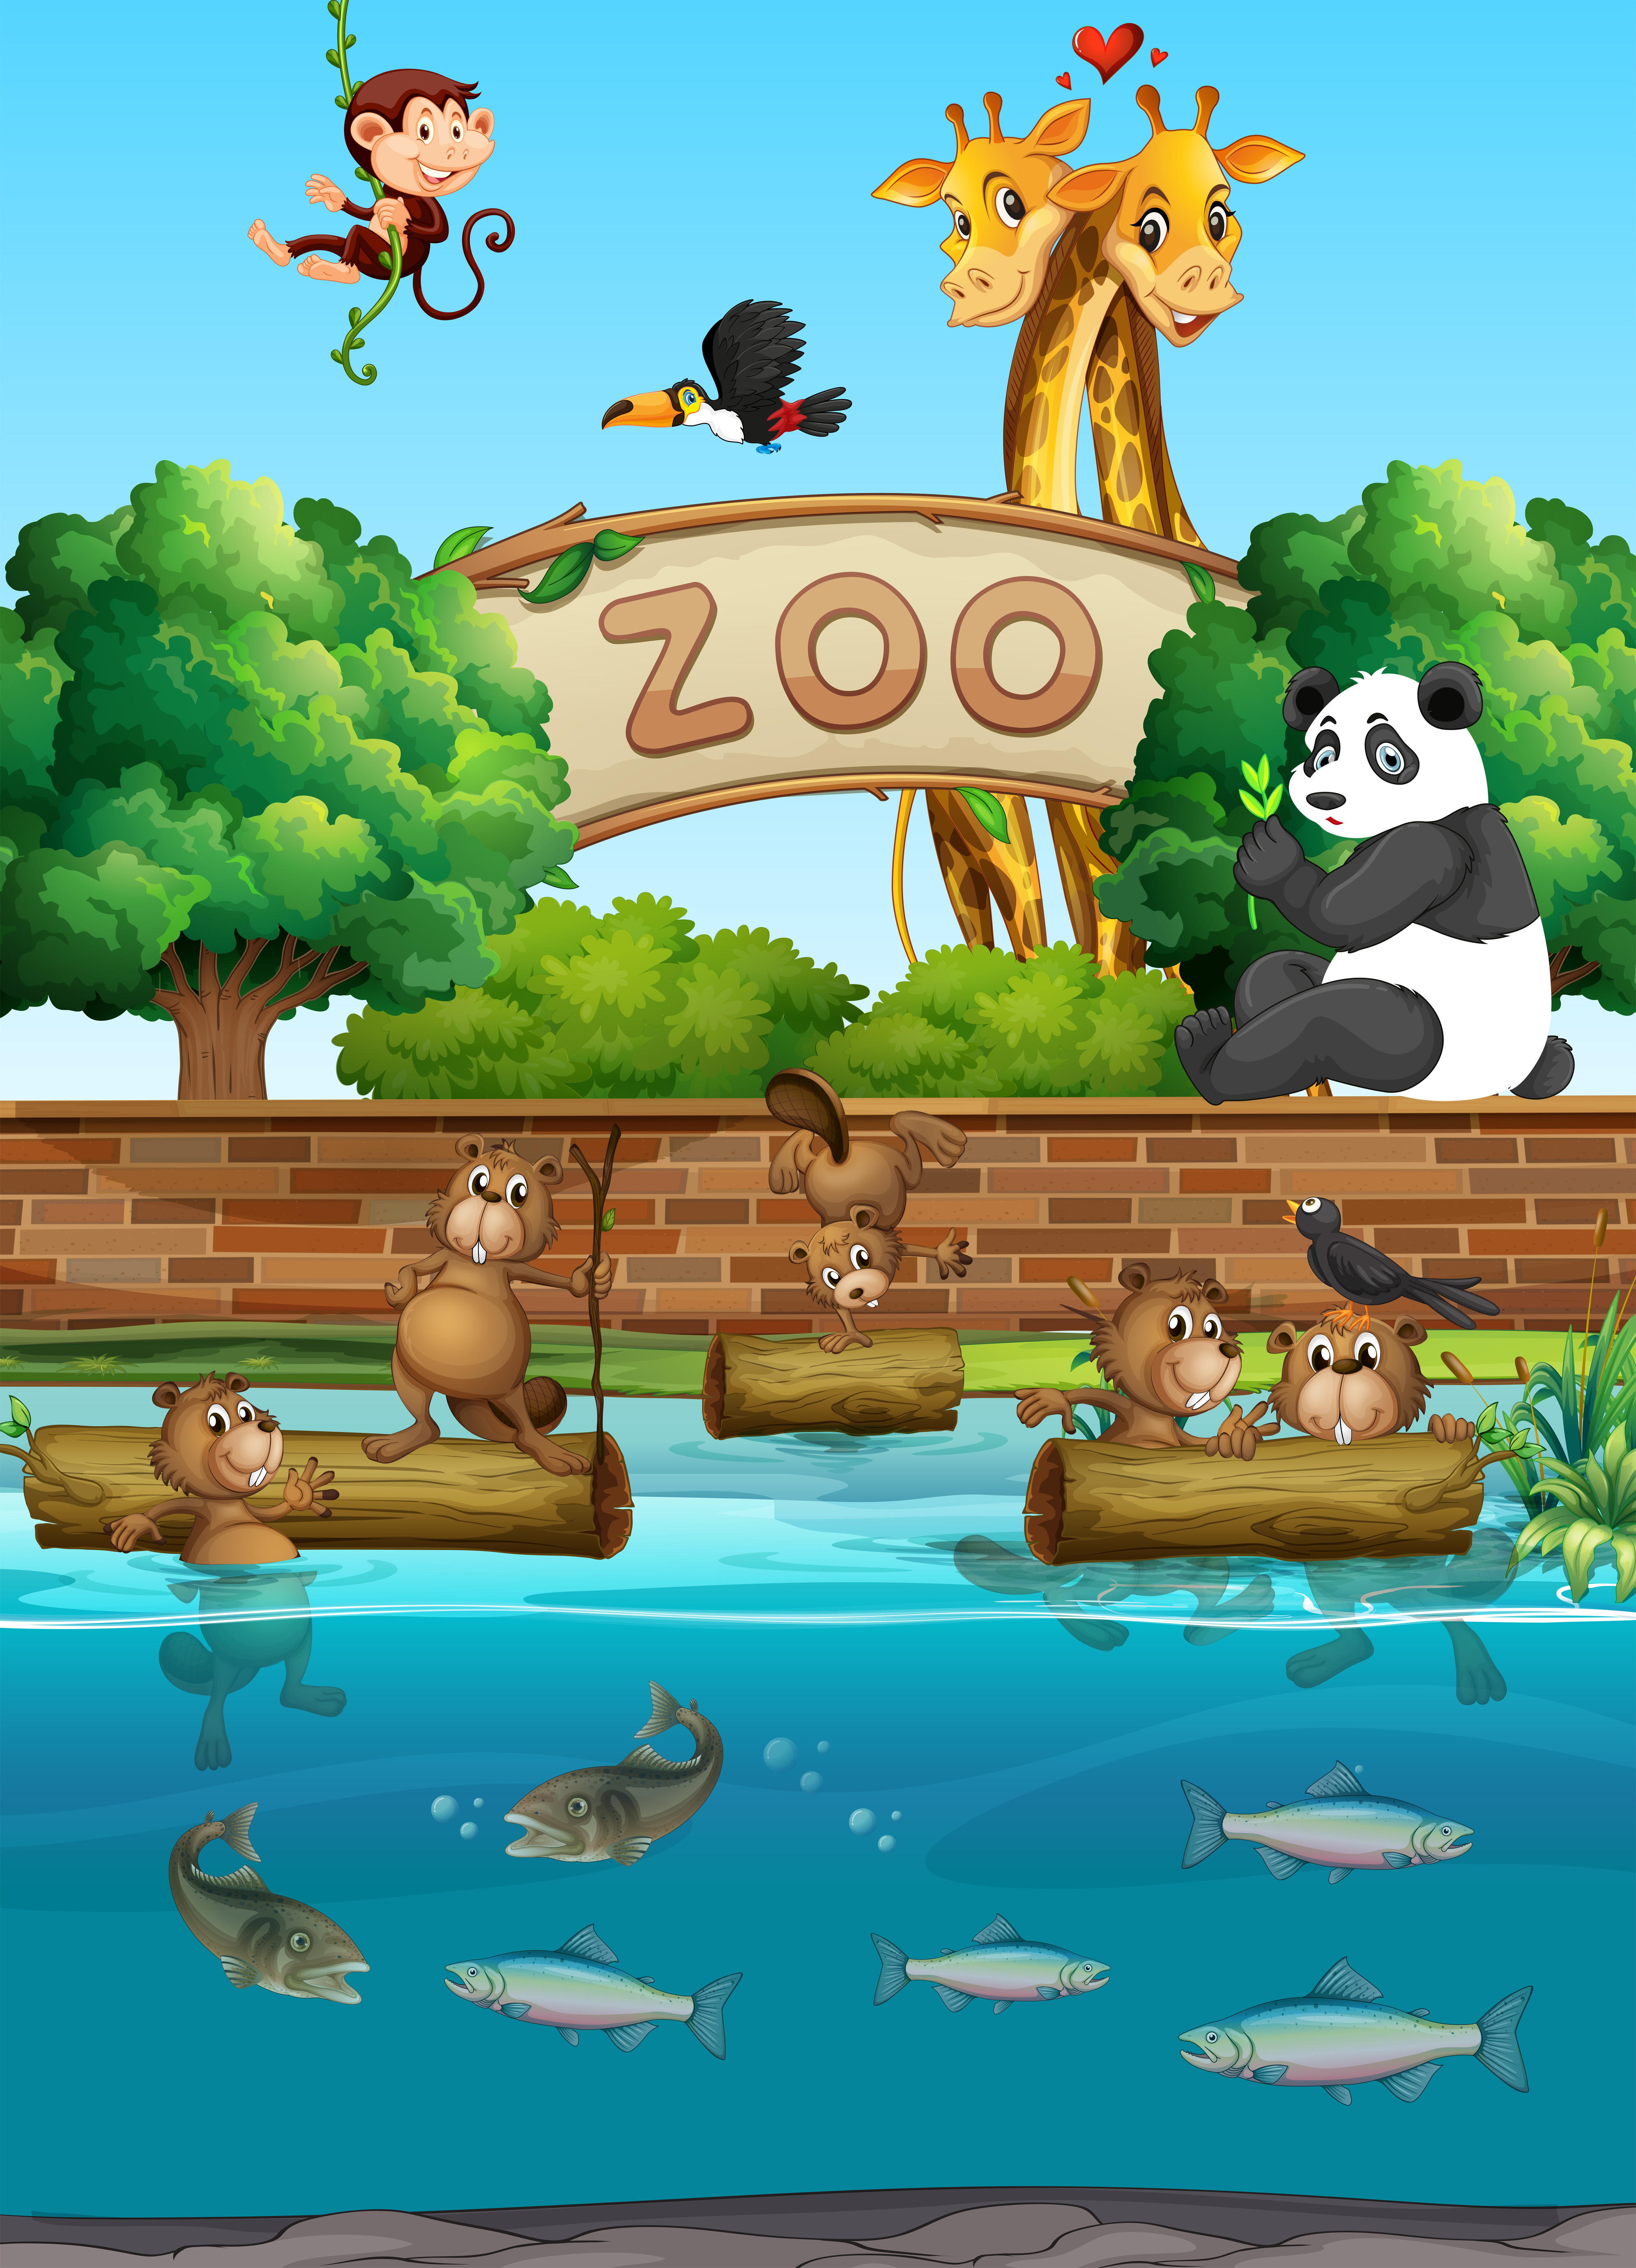 Scene at the zoo with many wild animals - Download Free Vectors, Clipart Graphics & Vector Art